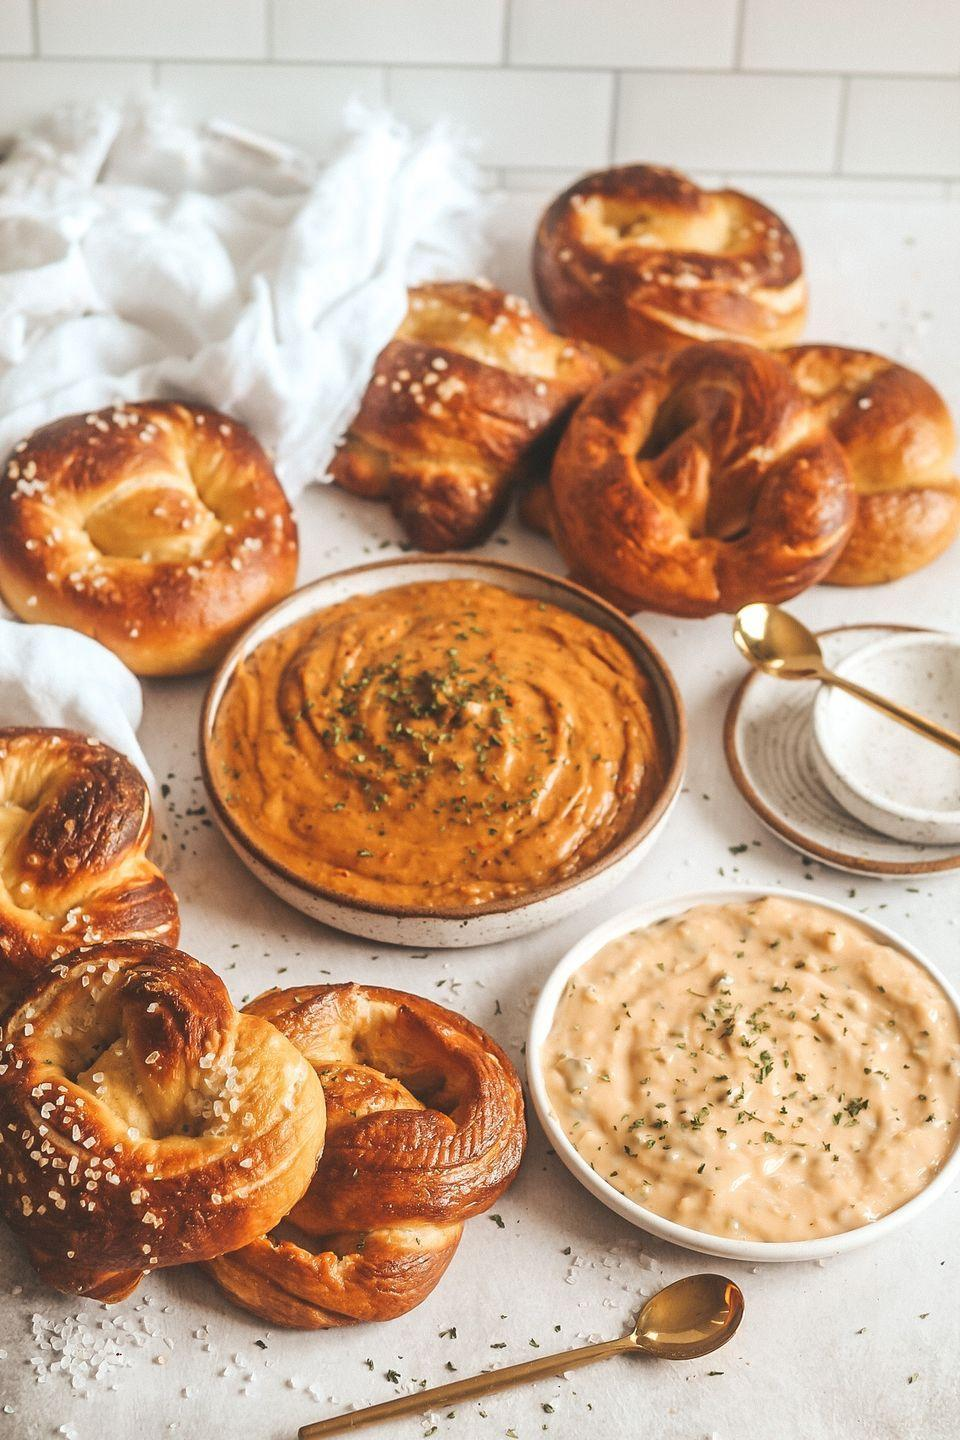 """<p>As if making <em>brioche</em> homemade pretzels wasn't enough, there's also a beer cheese dip made with smoked gouda. Talk about heaven!</p><p><strong>Get the recipe at <a href=""""https://britneybreaksbread.com/index.php/2020/09/11/brioche-pretzels-with-smoked-gouda-beer-cheese-dip/"""" rel=""""nofollow noopener"""" target=""""_blank"""" data-ylk=""""slk:Britney Breaks Bread"""" class=""""link rapid-noclick-resp"""">Britney Breaks Bread</a>.</strong></p><p><b><a class=""""link rapid-noclick-resp"""" href=""""https://go.redirectingat.com?id=74968X1596630&url=https%3A%2F%2Fwww.walmart.com%2Fsearch%2F%3Fquery%3Dstand%2Bmixer&sref=https%3A%2F%2Fwww.thepioneerwoman.com%2Ffood-cooking%2Fmeals-menus%2Fg35049189%2Fsuper-bowl-food-recipes%2F"""" rel=""""nofollow noopener"""" target=""""_blank"""" data-ylk=""""slk:SHOP STAND MIXERS"""">SHOP STAND MIXERS</a></b></p>"""